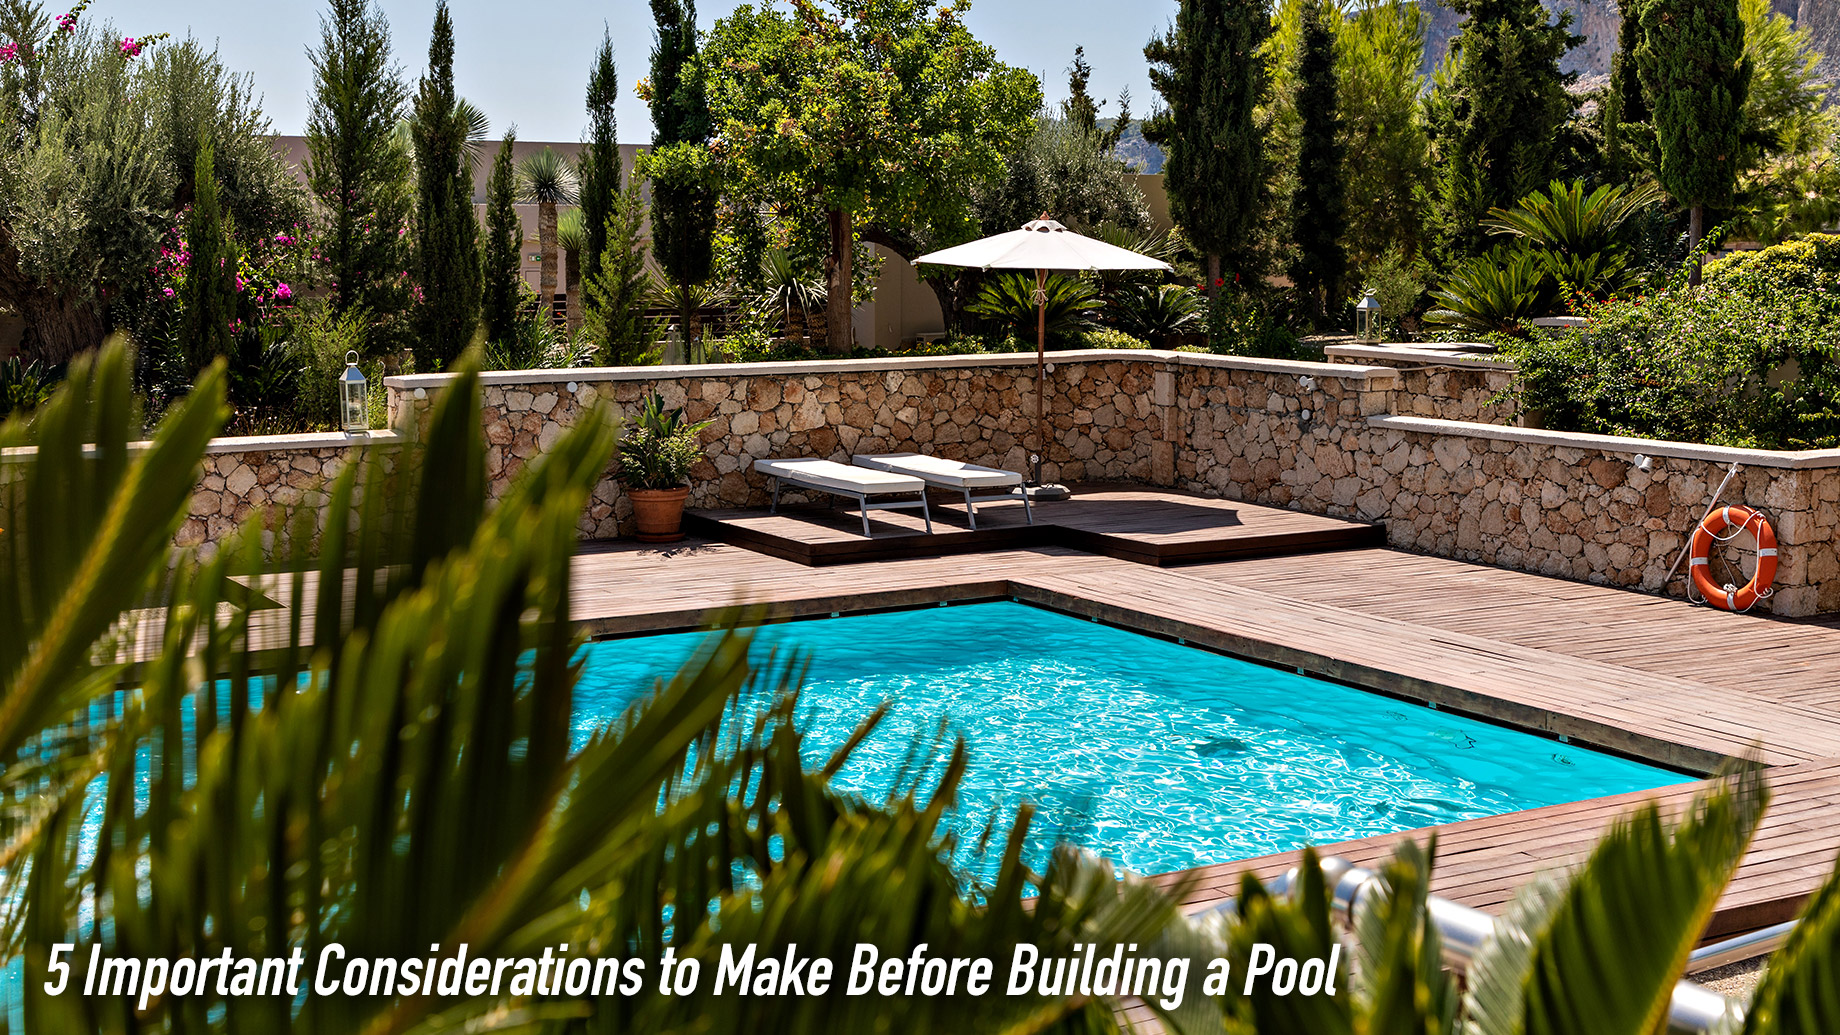 5 Important Considerations to Make Before Building a Pool